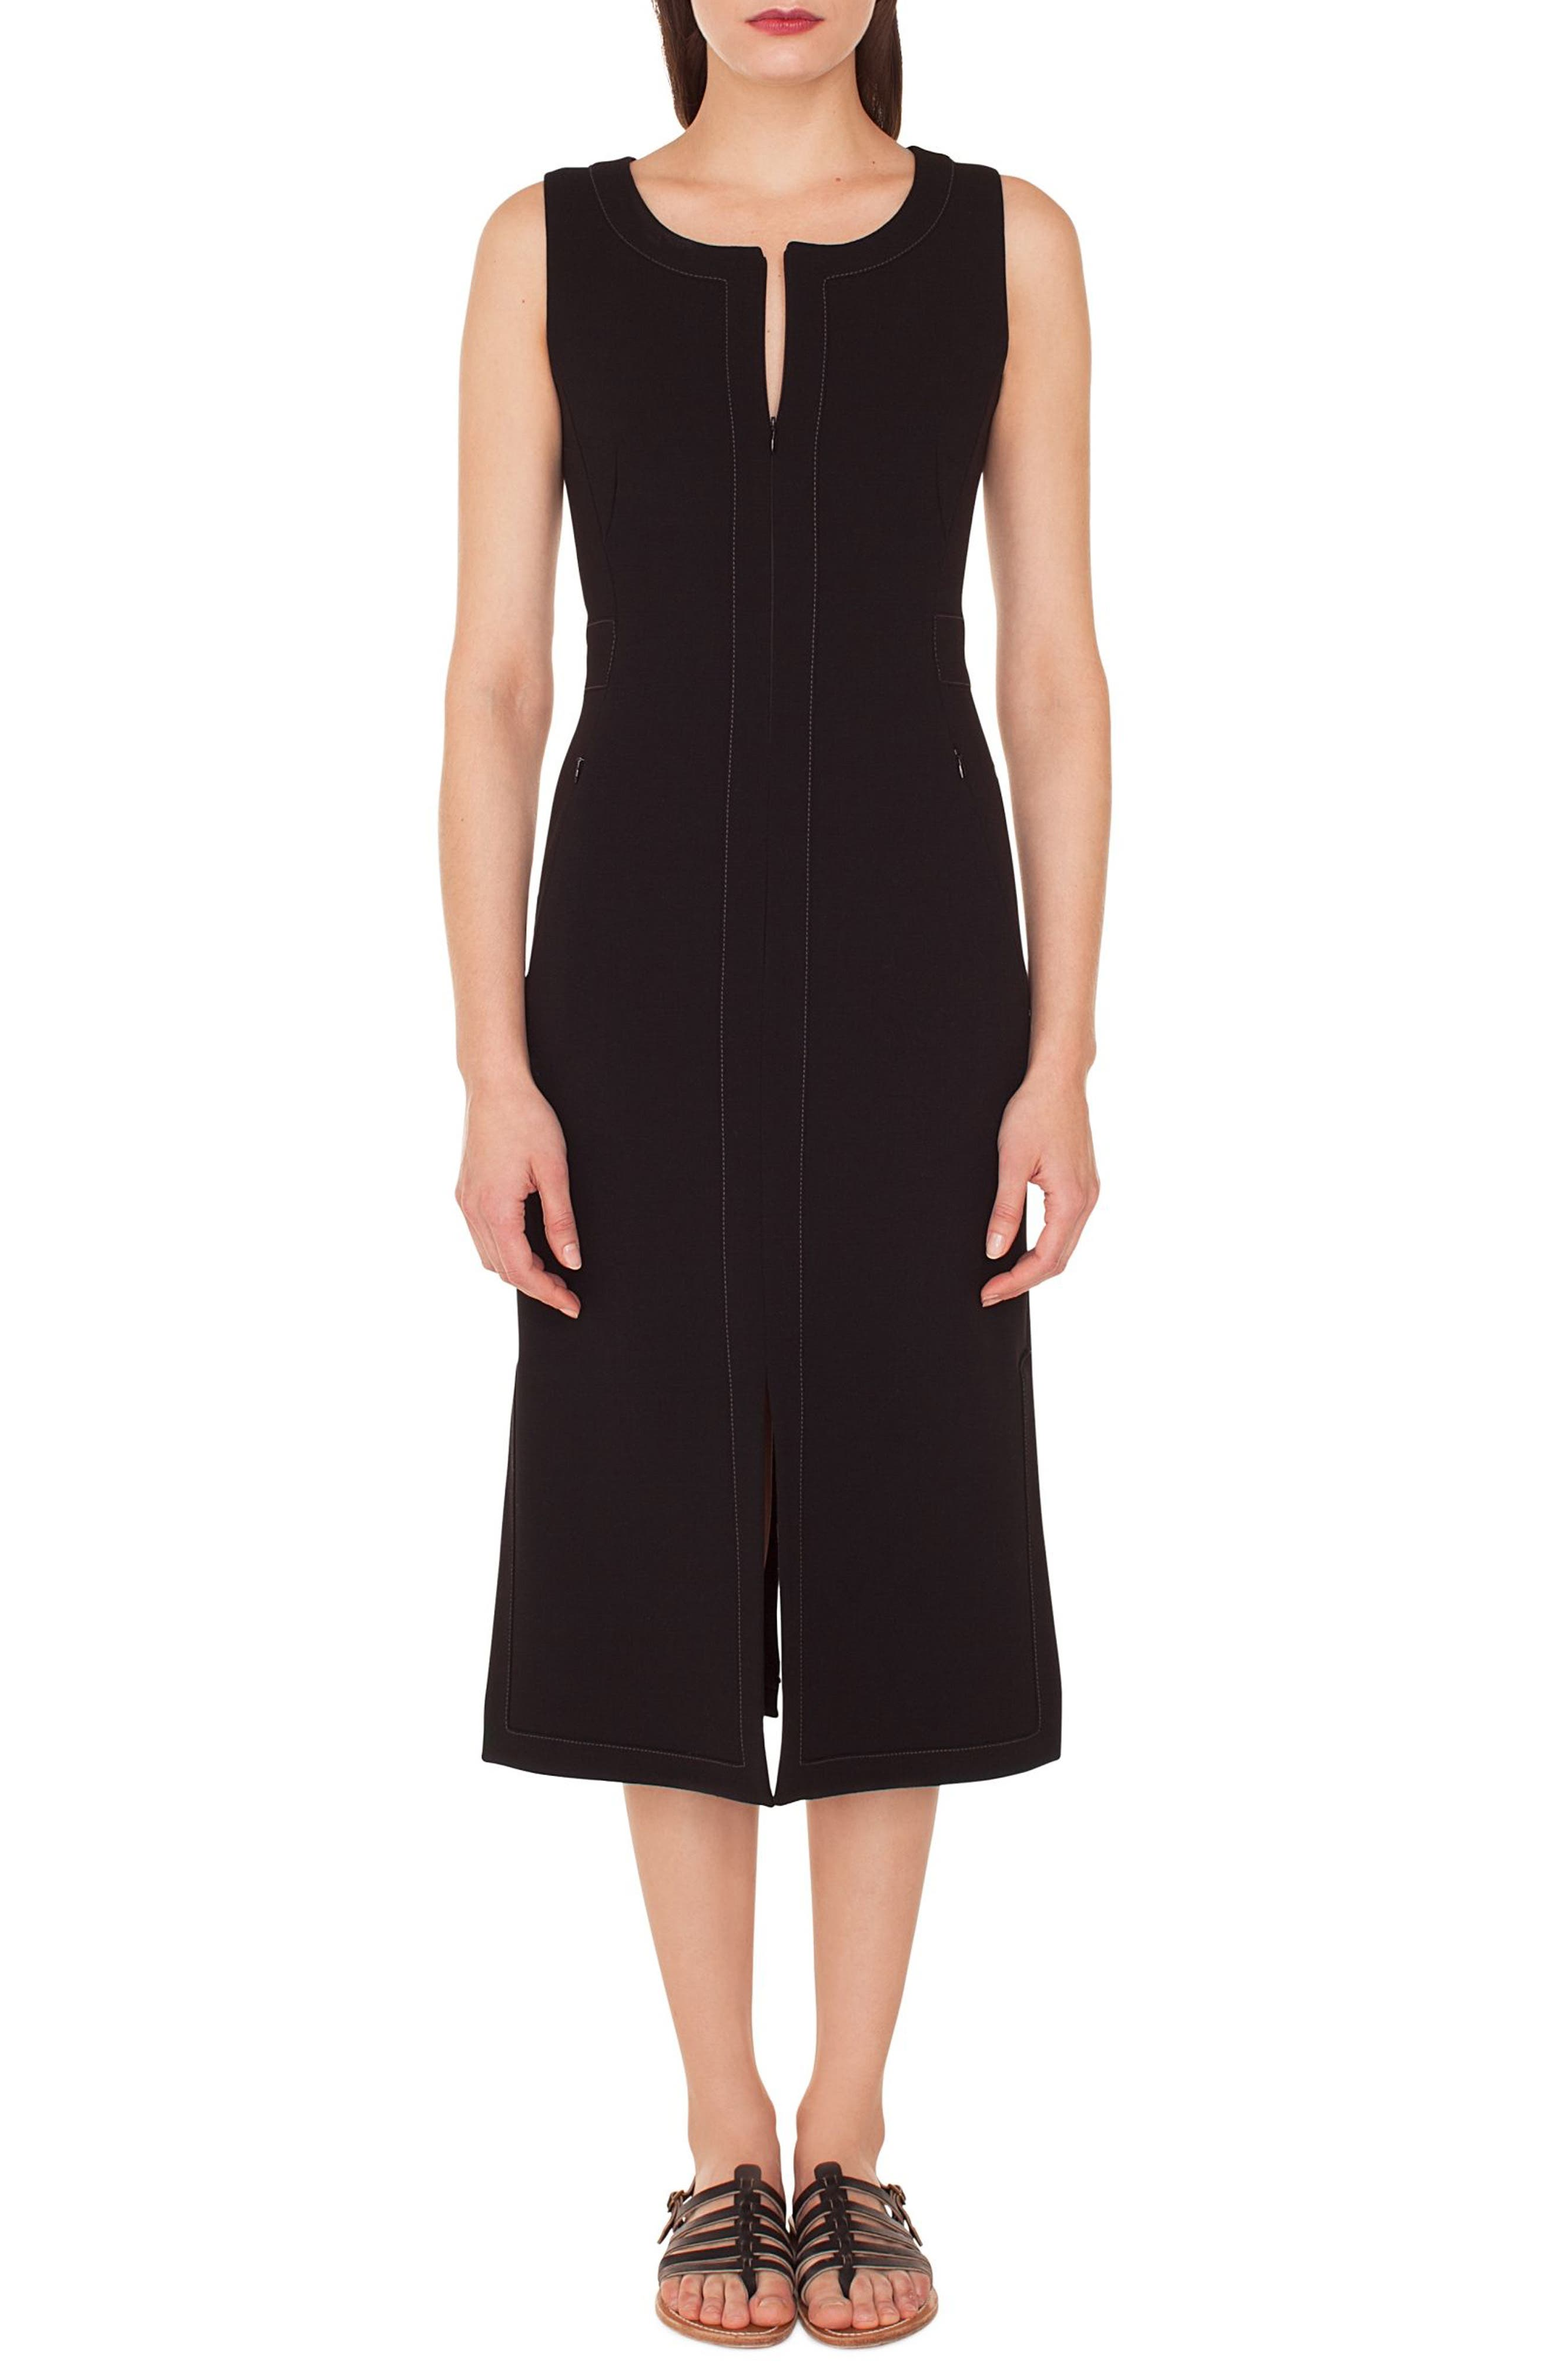 Topstitch Double Face Stretch Wool Dress,                             Main thumbnail 1, color,                             BLACK